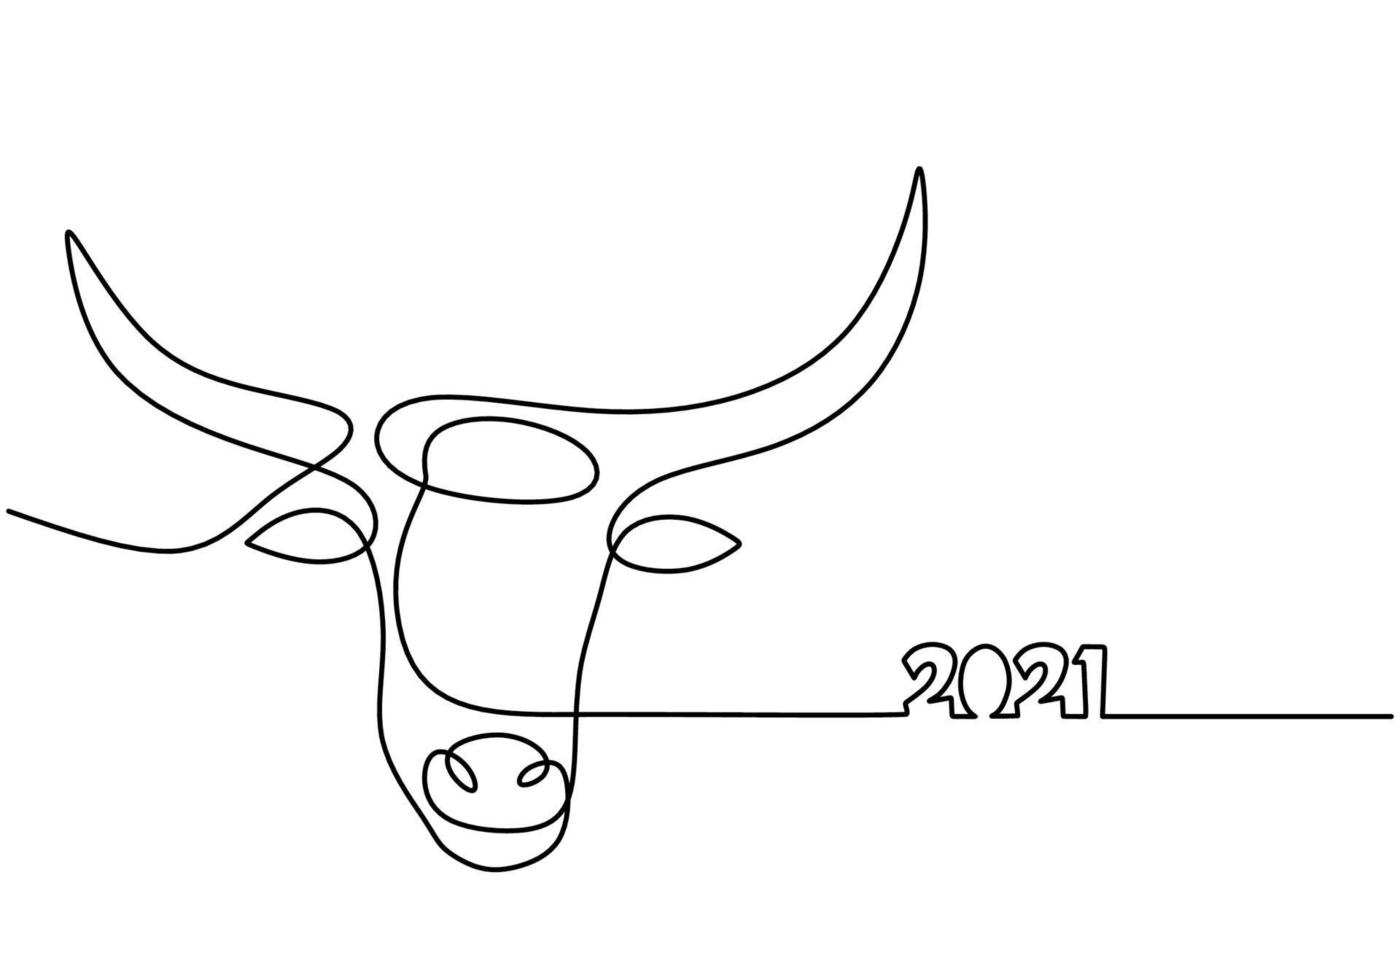 Bull continuous one line drawing. Symbol of the 2021 new year. The concept of strength, confidence and reliability isolated on white background. Happy ox Year simple minimalism design vector